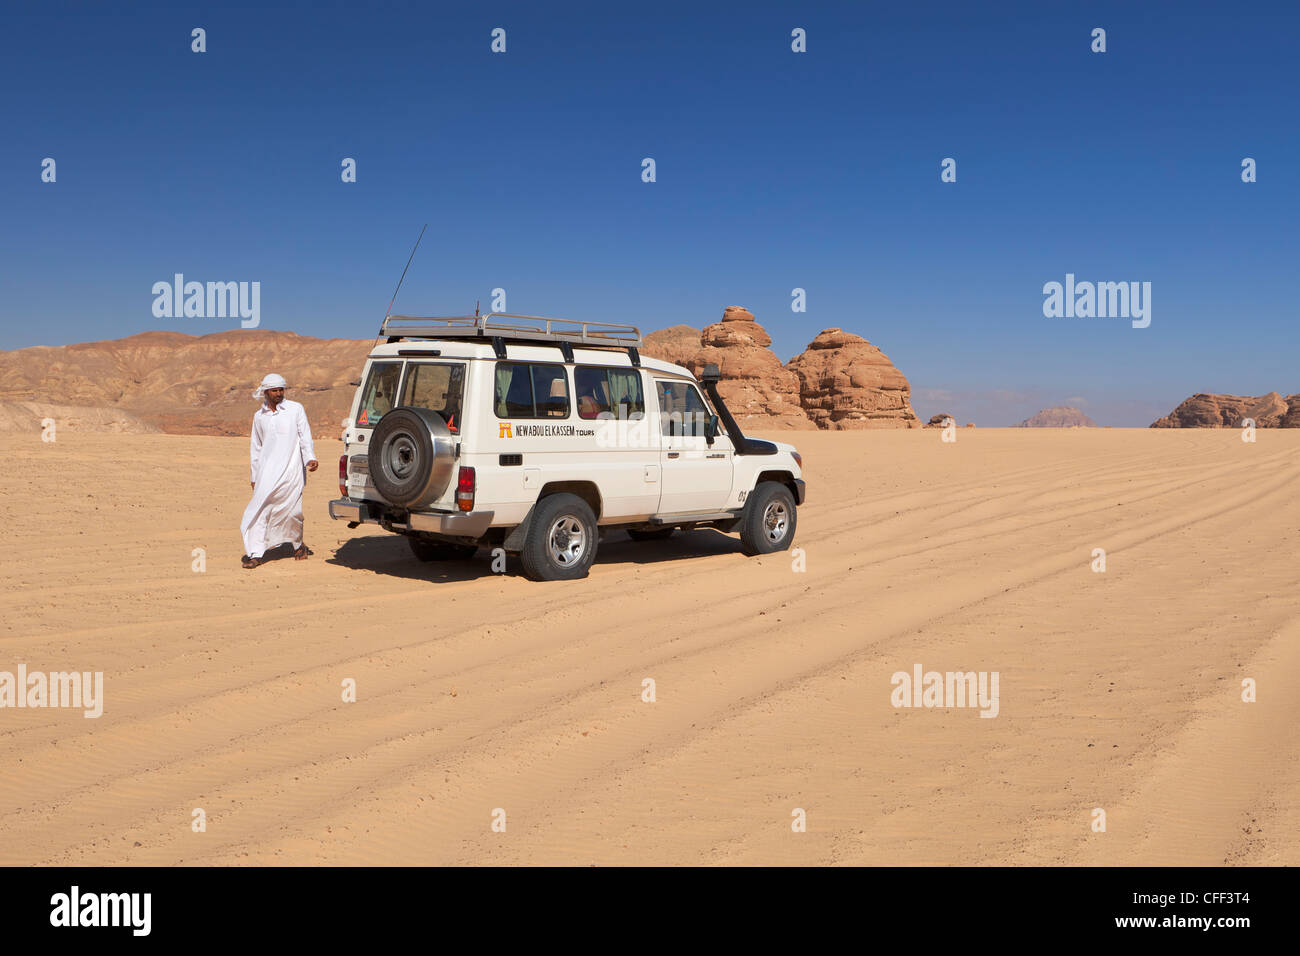 Jeep safari in the Sinai desert with bedouin driver, Egypt. - Stock Image